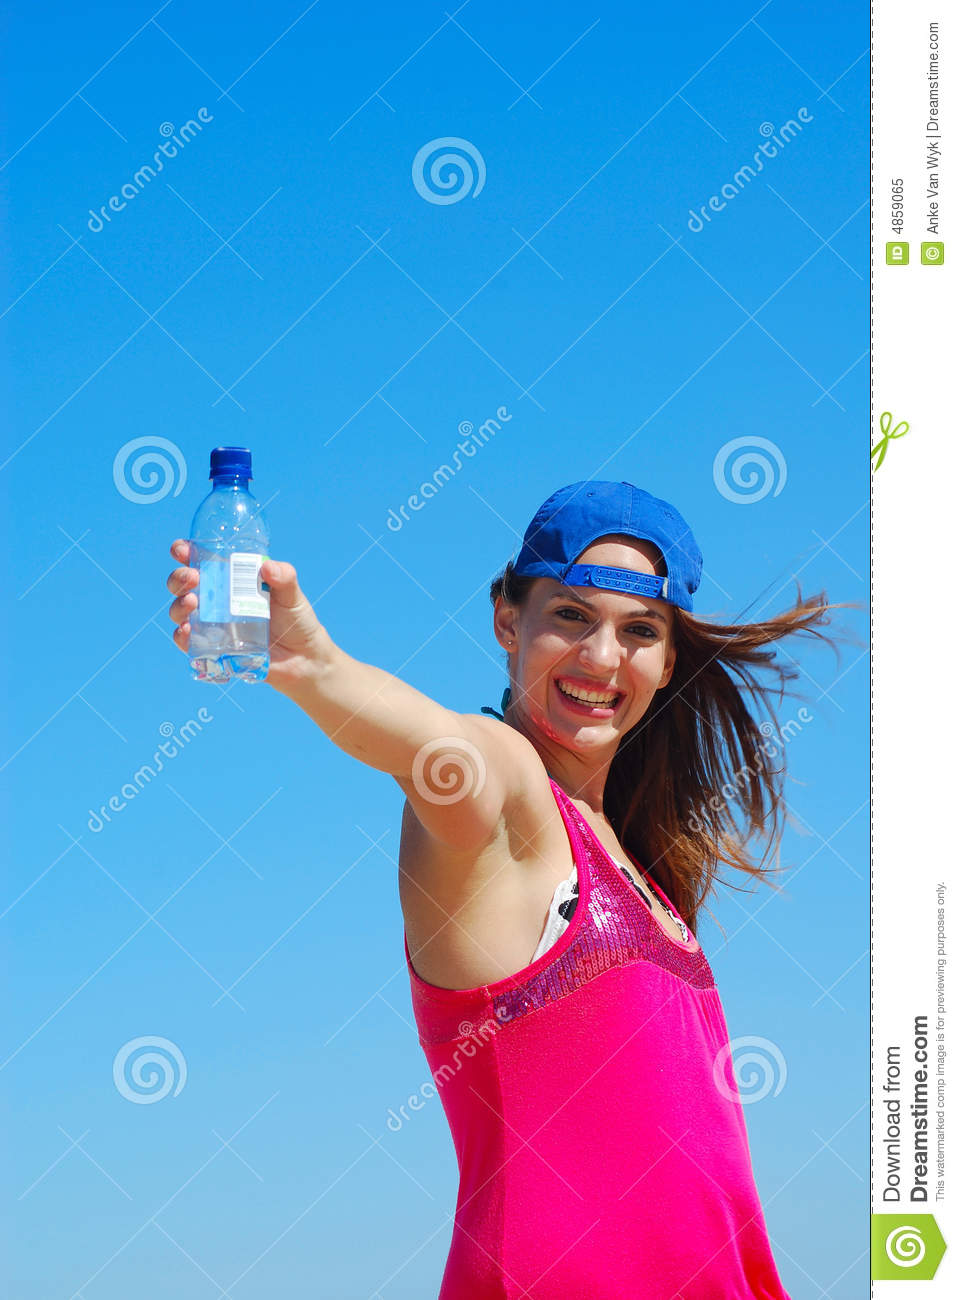 Girl With Water Bottle Royalty Free Stock Photo - Image ...